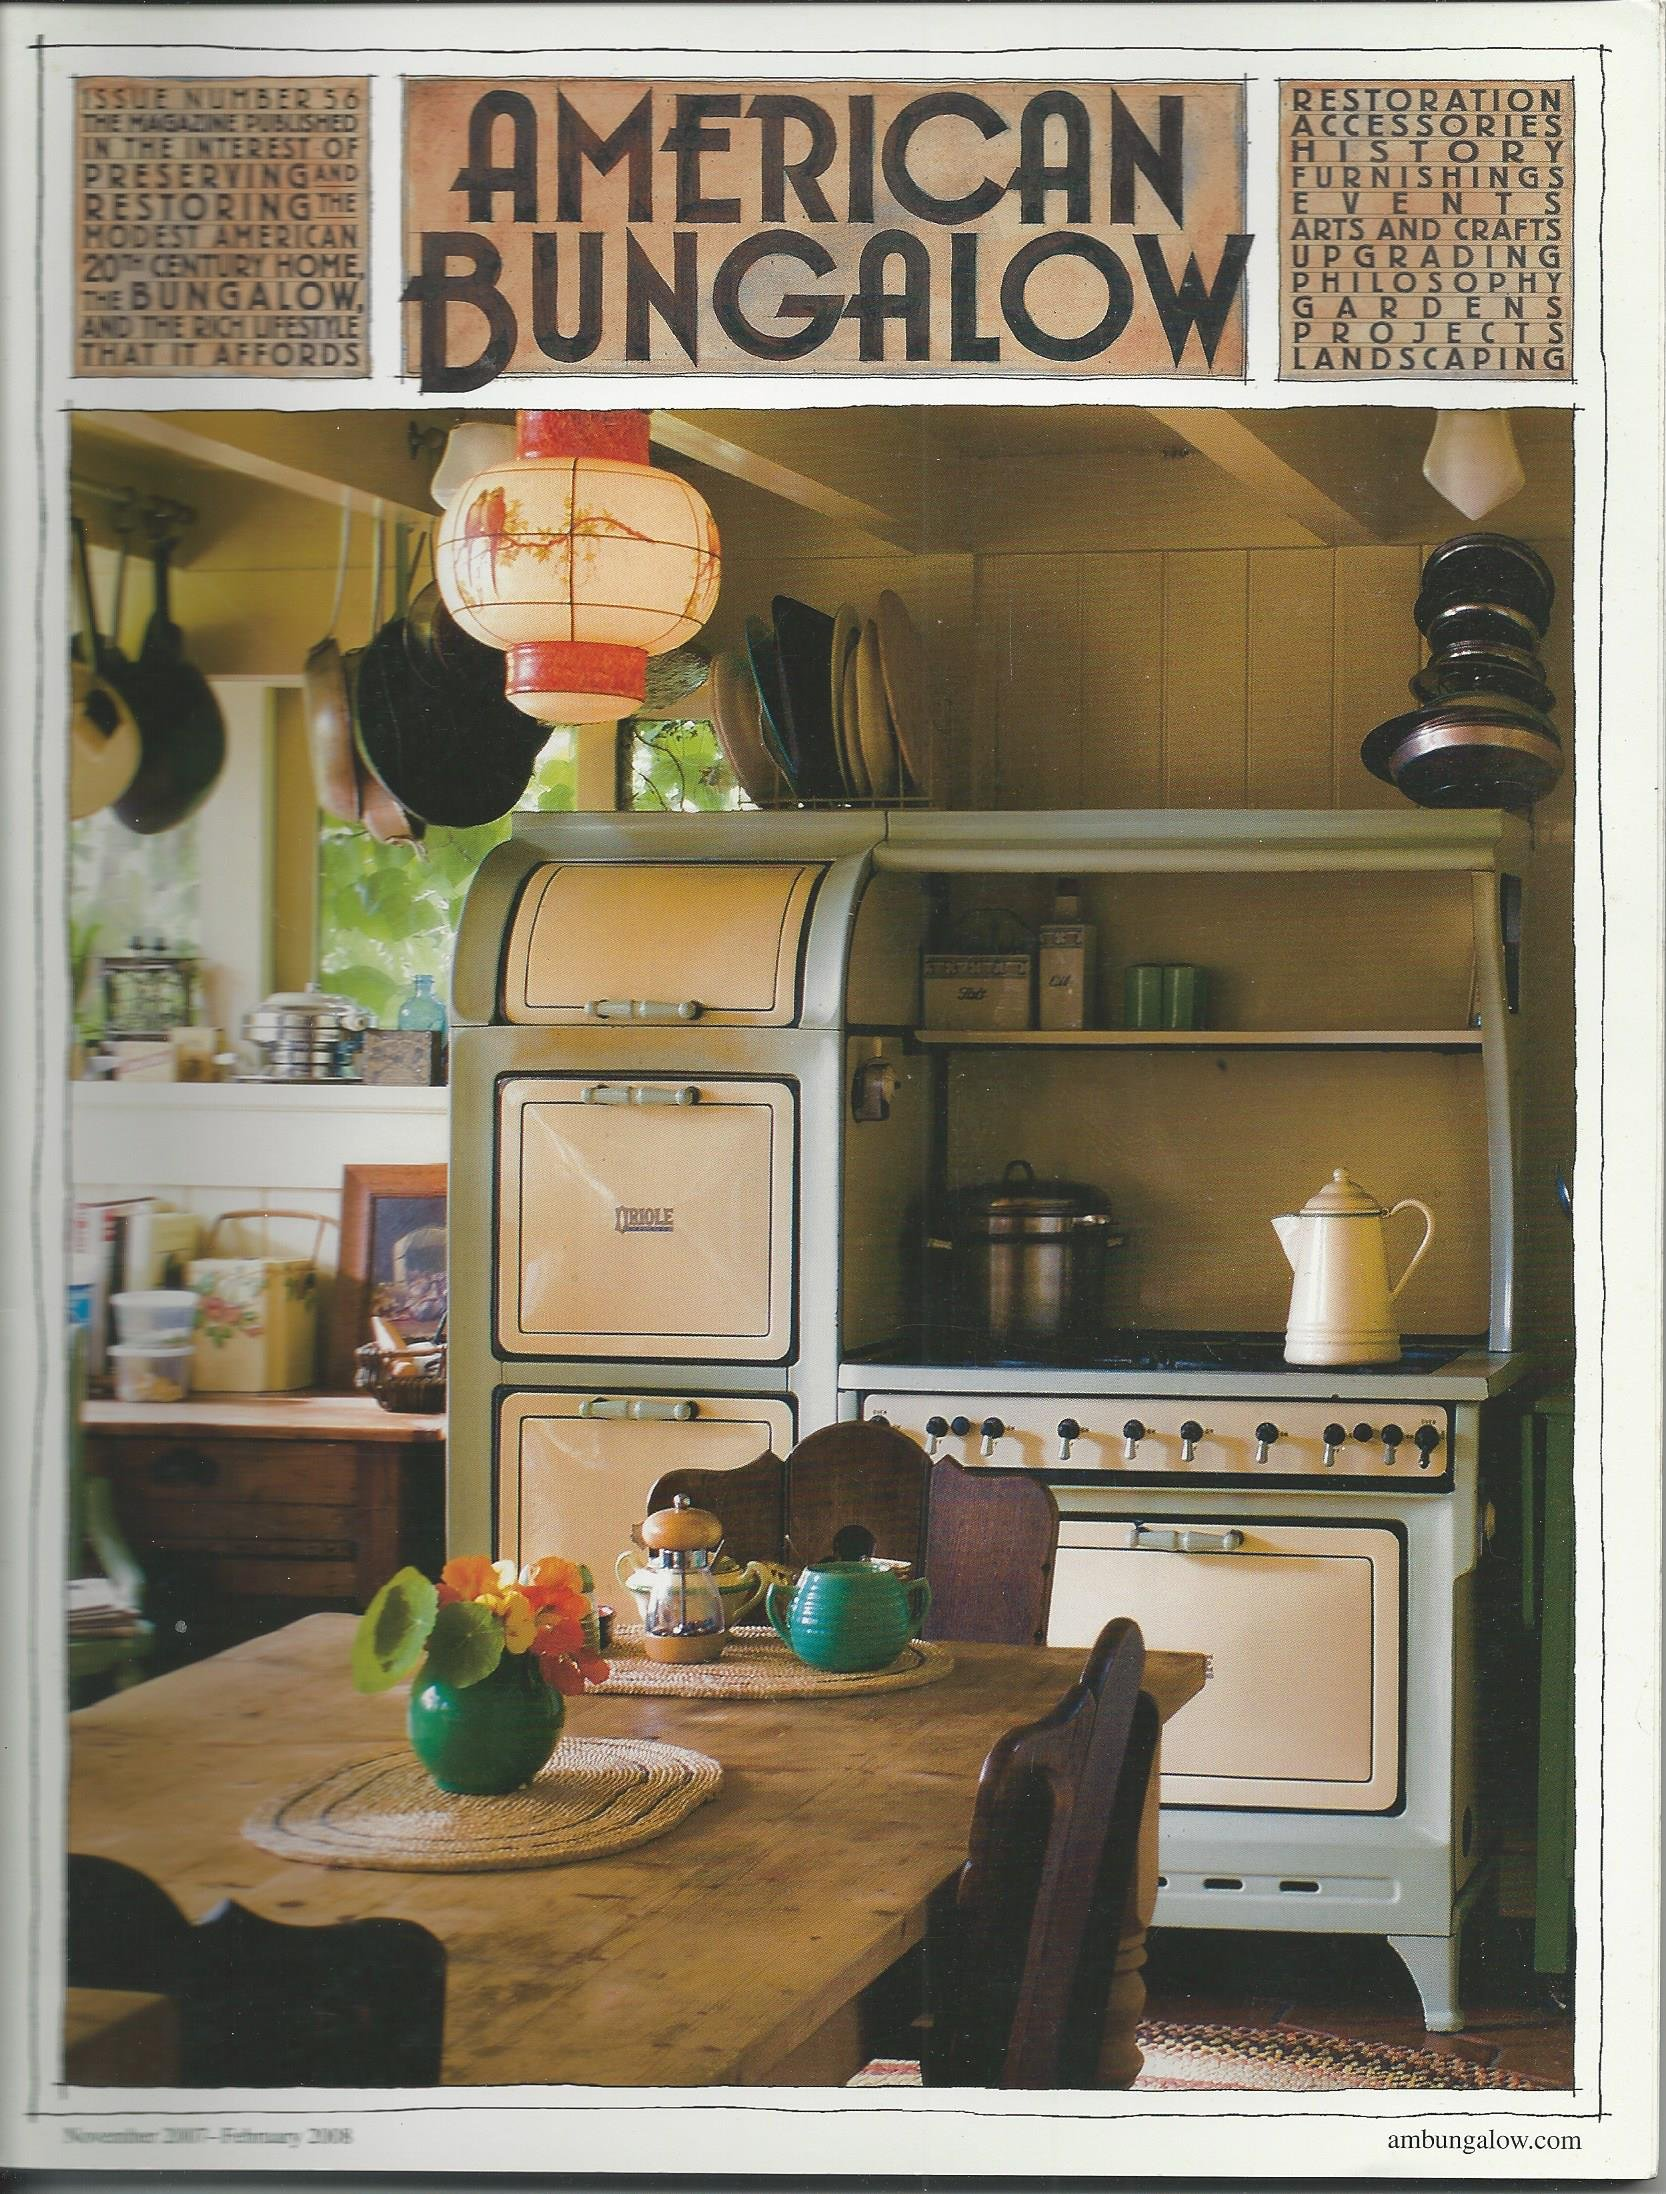 American Bungalow Magazine, Winter 2007 (Issue No. 56) PDF